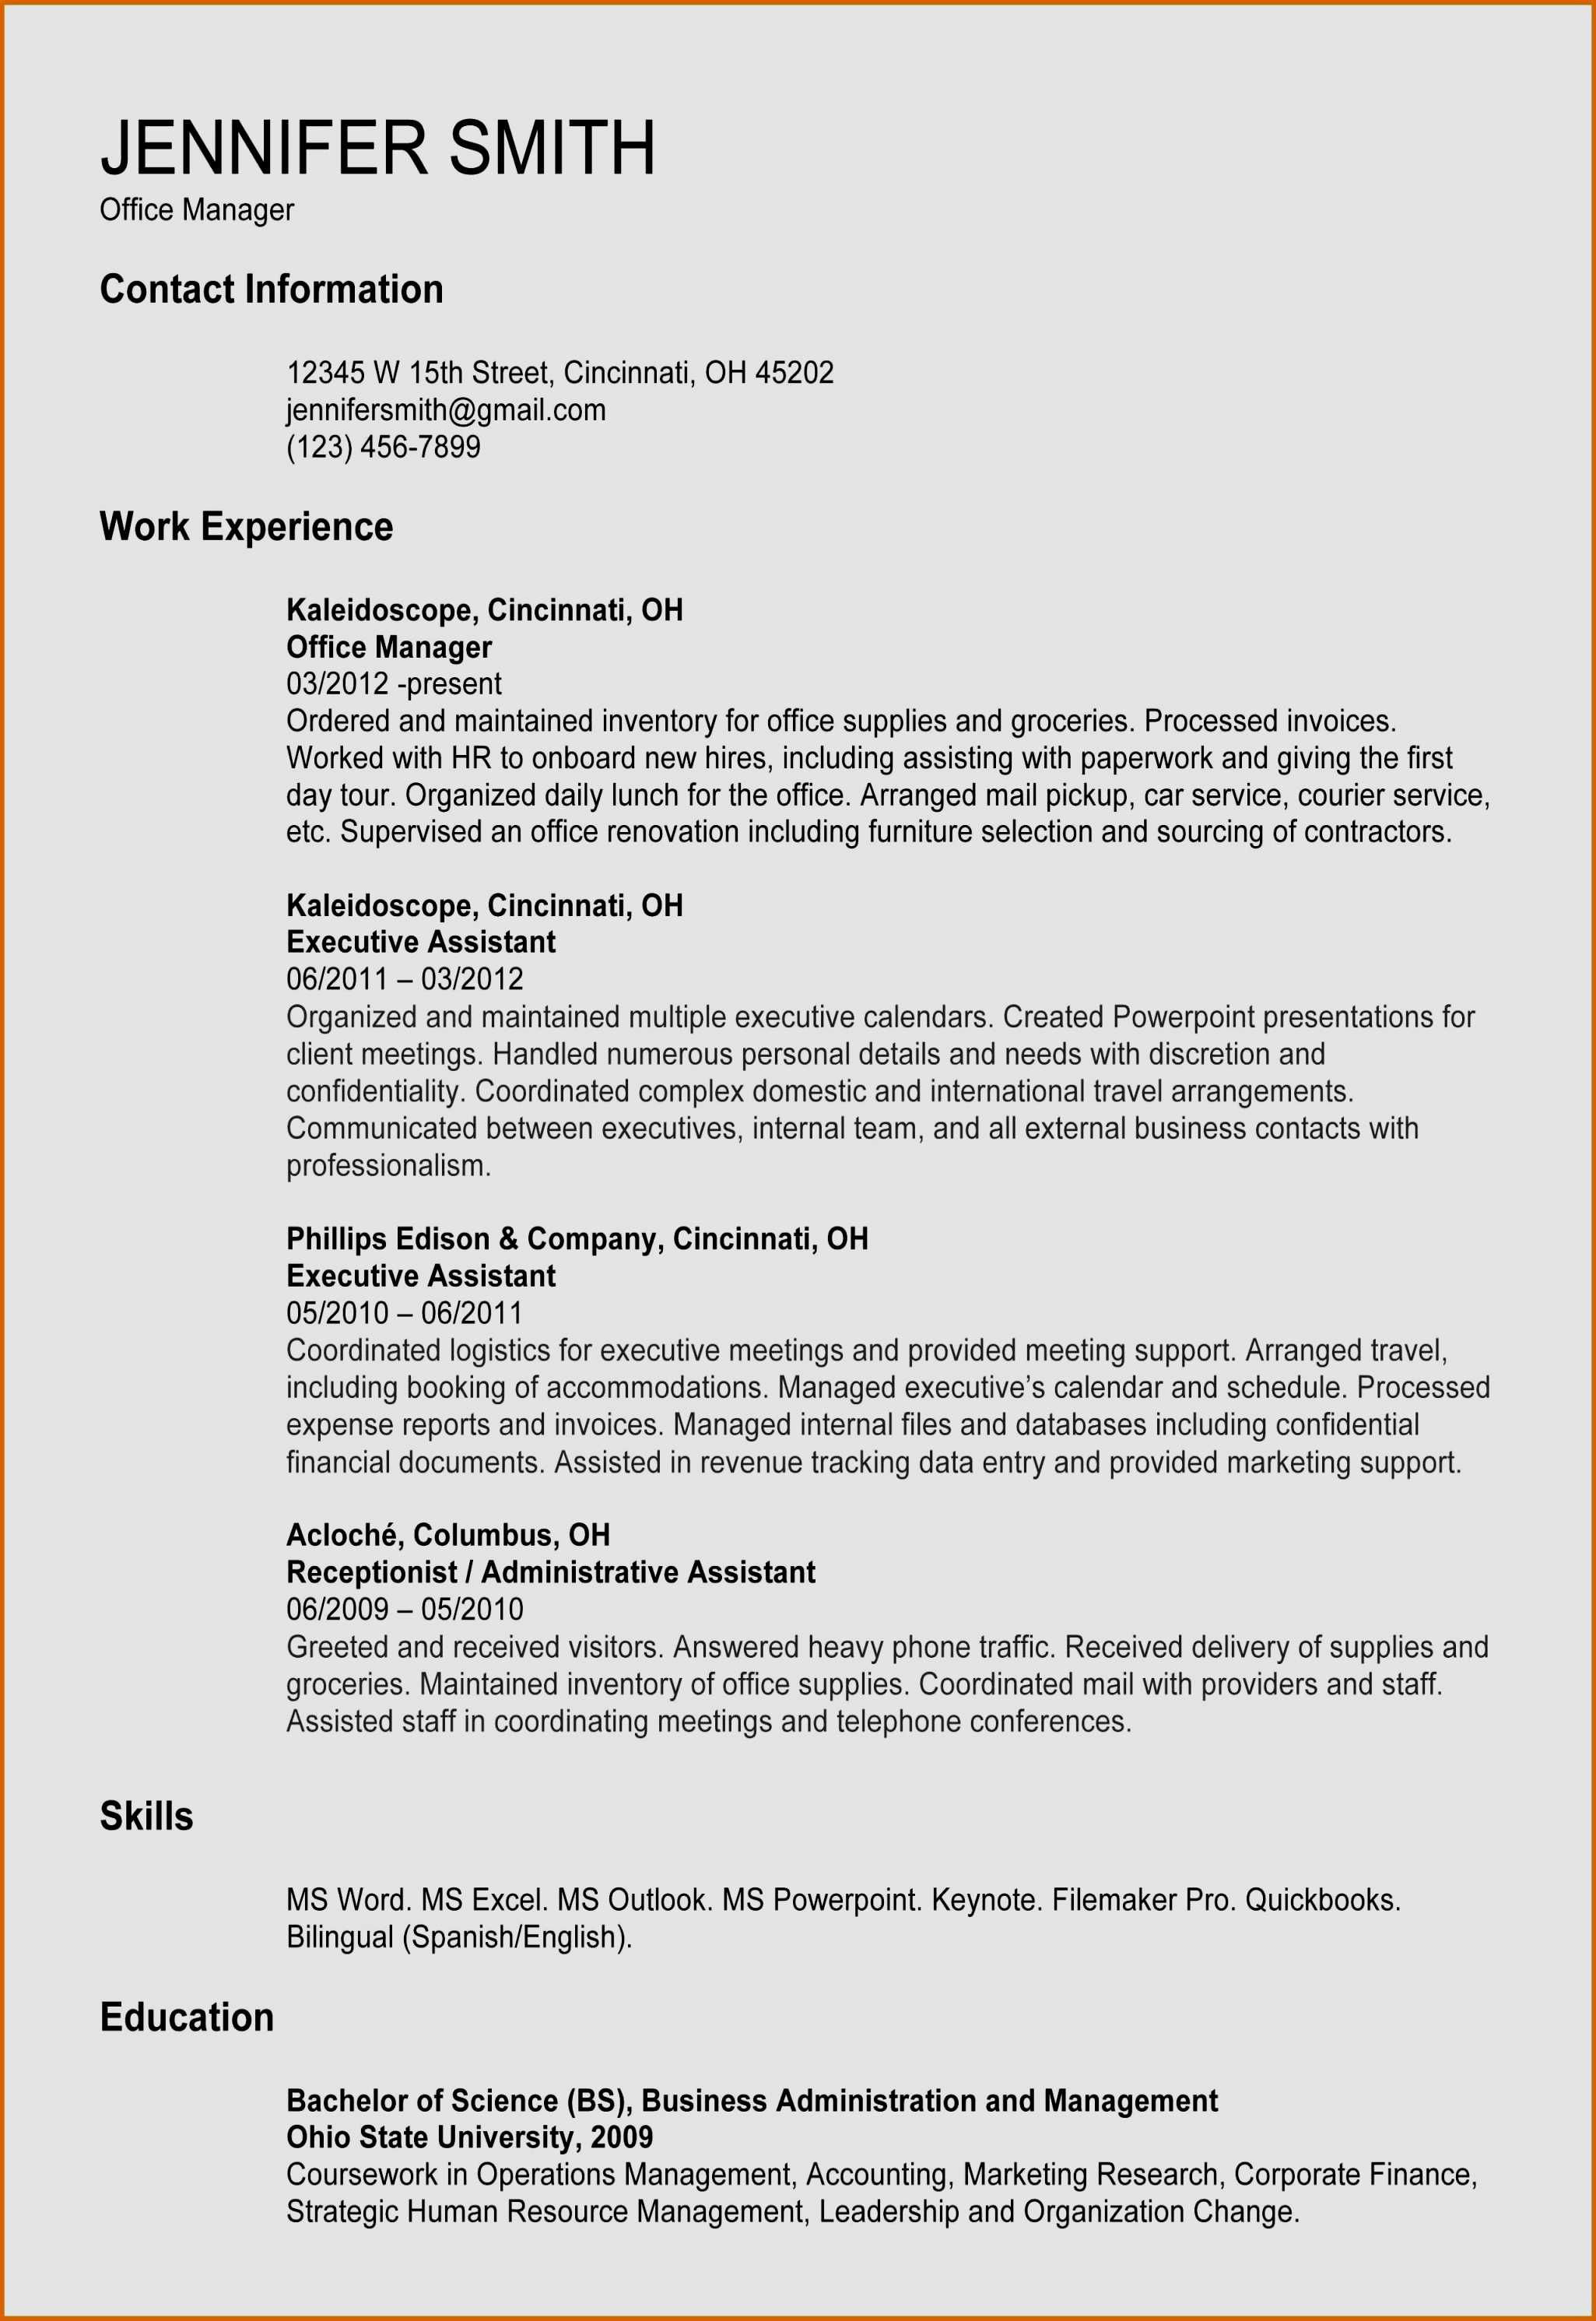 Office Manager Resume Template Free - 19 Inspirational Cover Letter Fice Manager Free Resume Templates